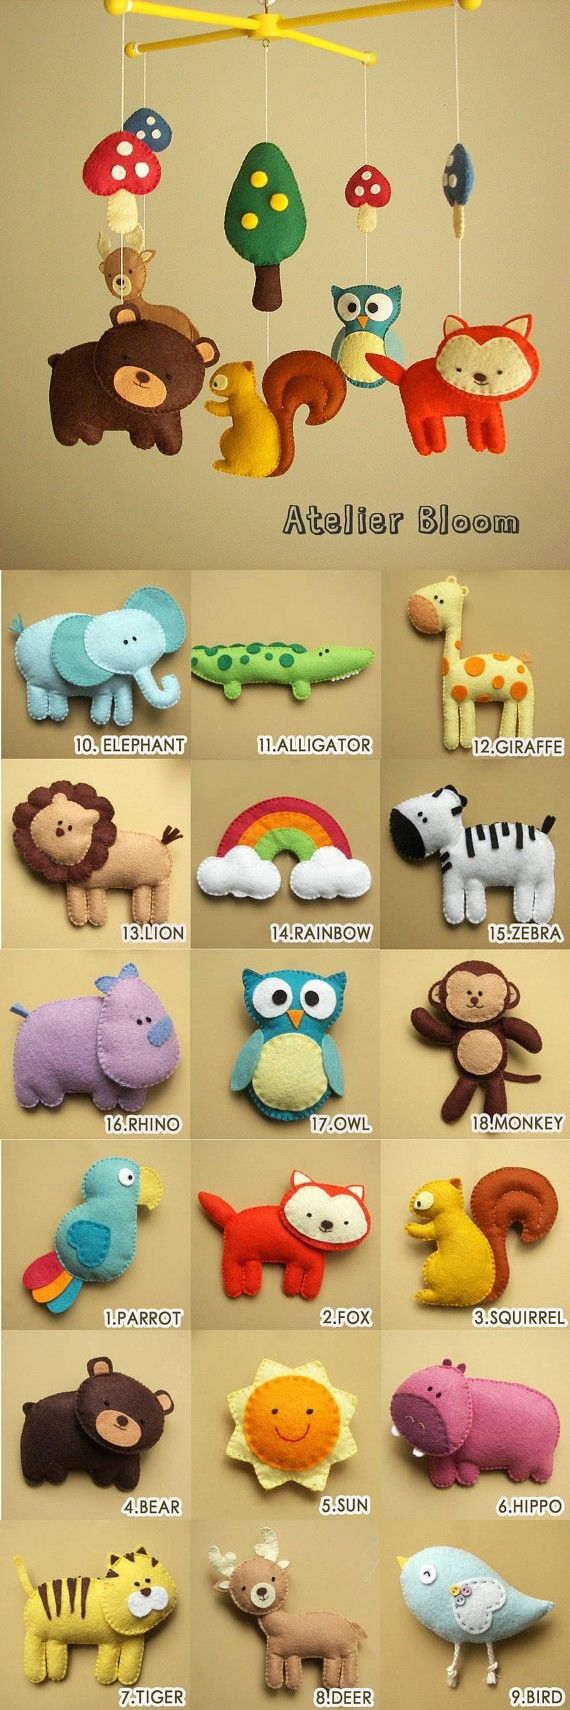 Felt animals mobile and toys (Feltnjoy etsy store)                                                                                                                                                      Más